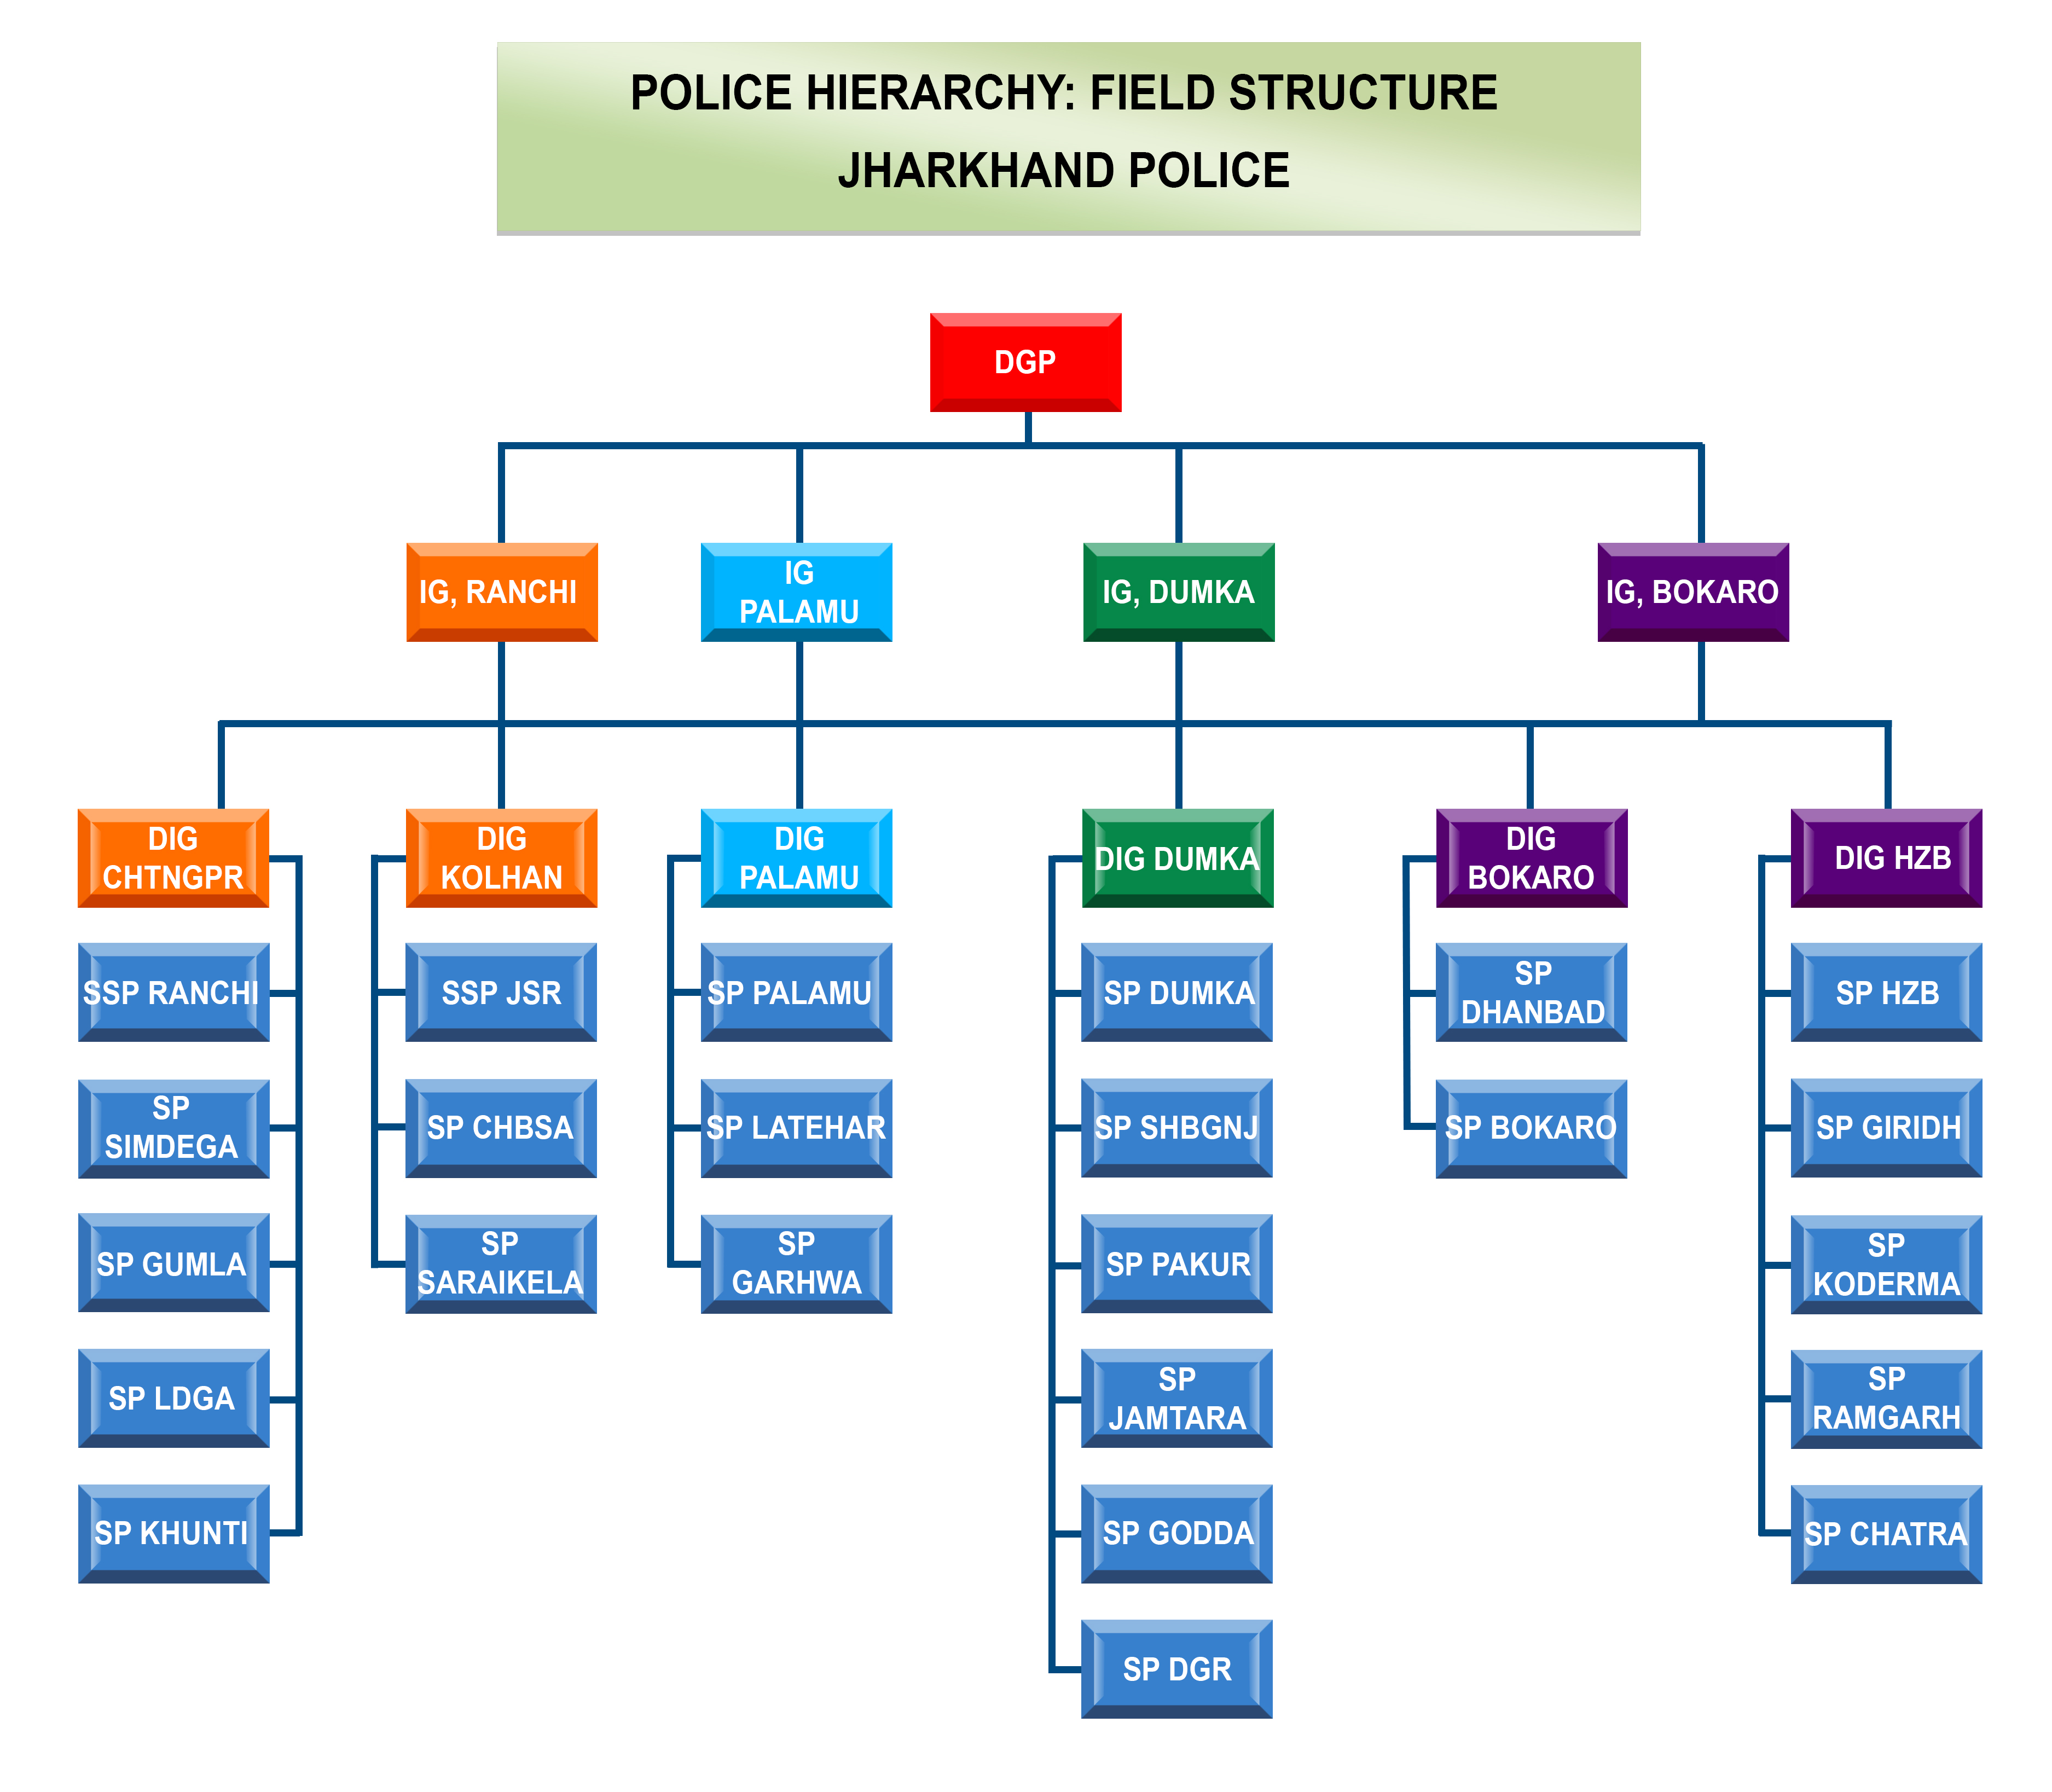 max force engine system diagram hierarchy system diagram organization chart | department of police, state ...